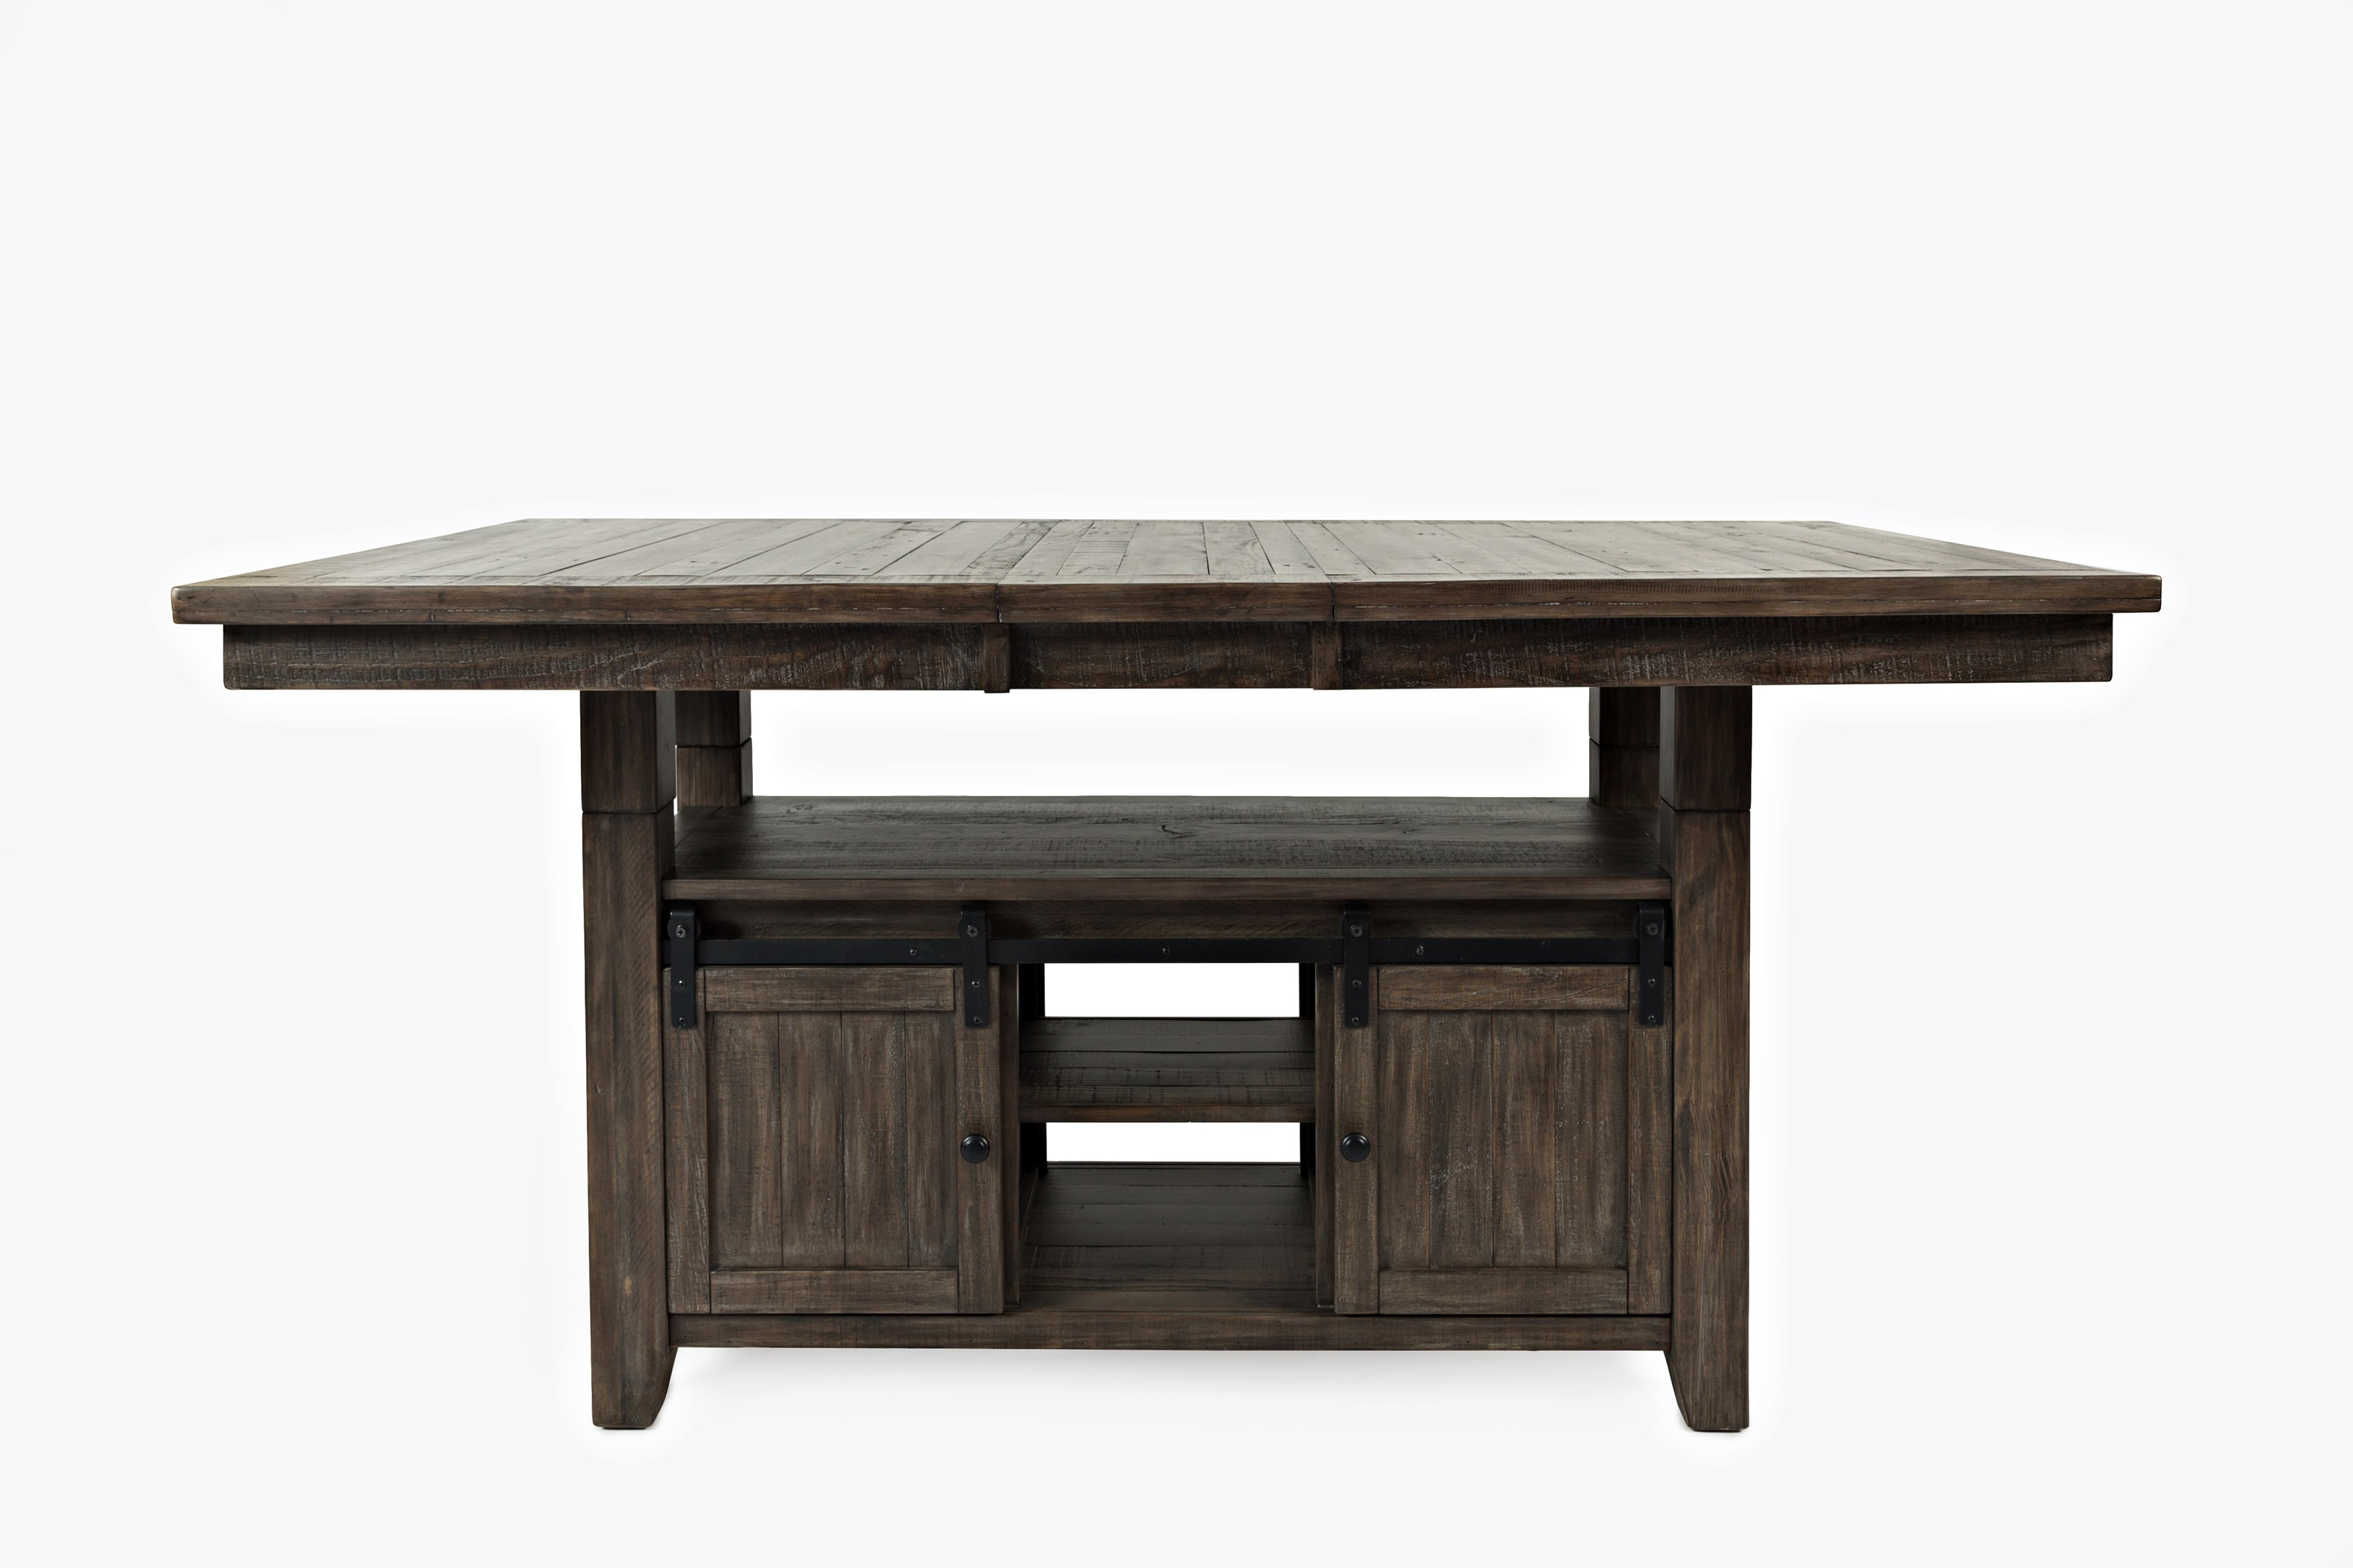 Adjustable height dining table